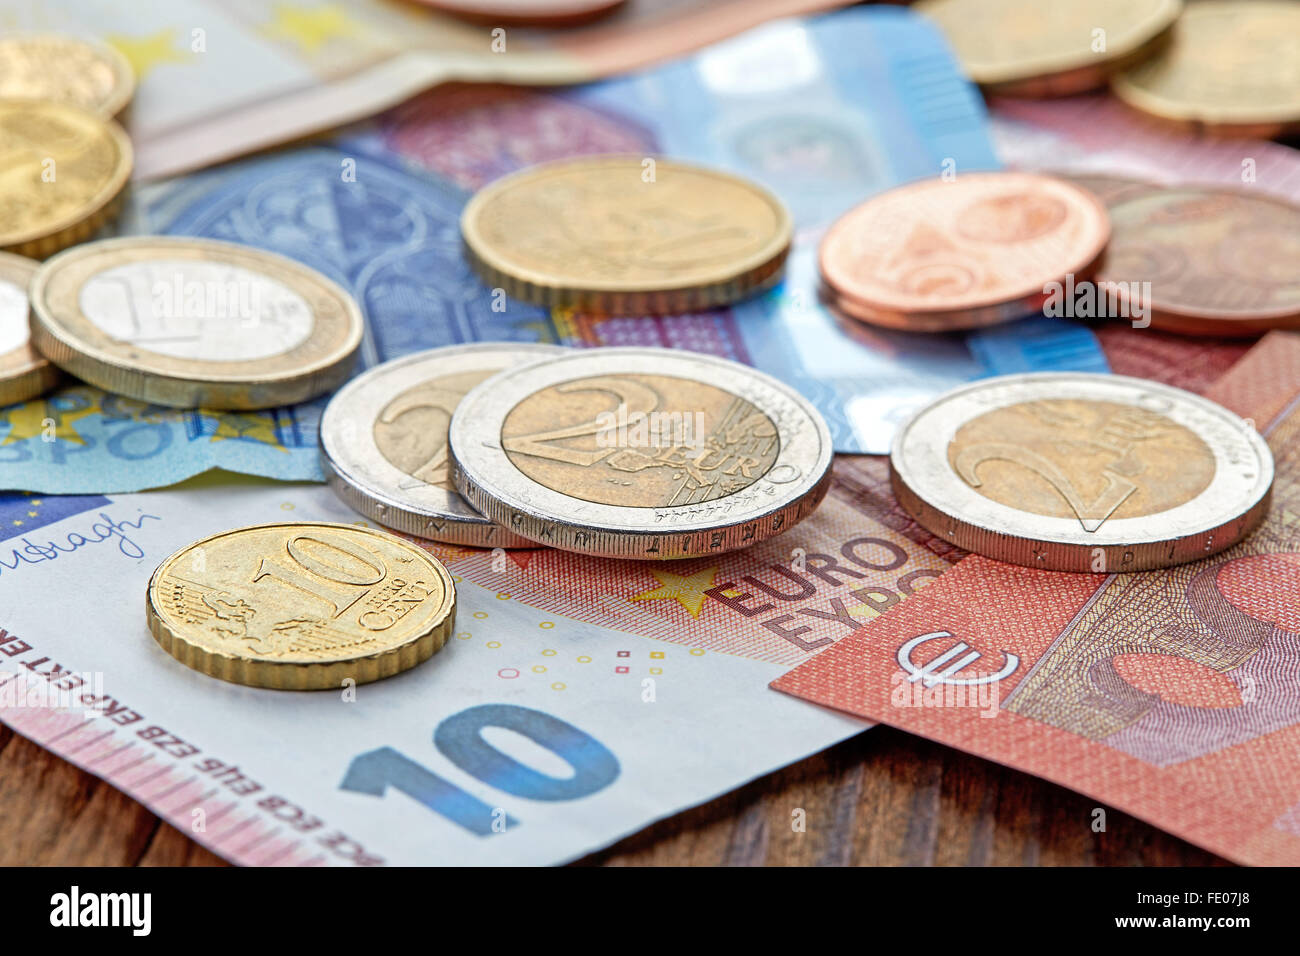 Money Euro banknotes and coins on wooden table - Stock Image